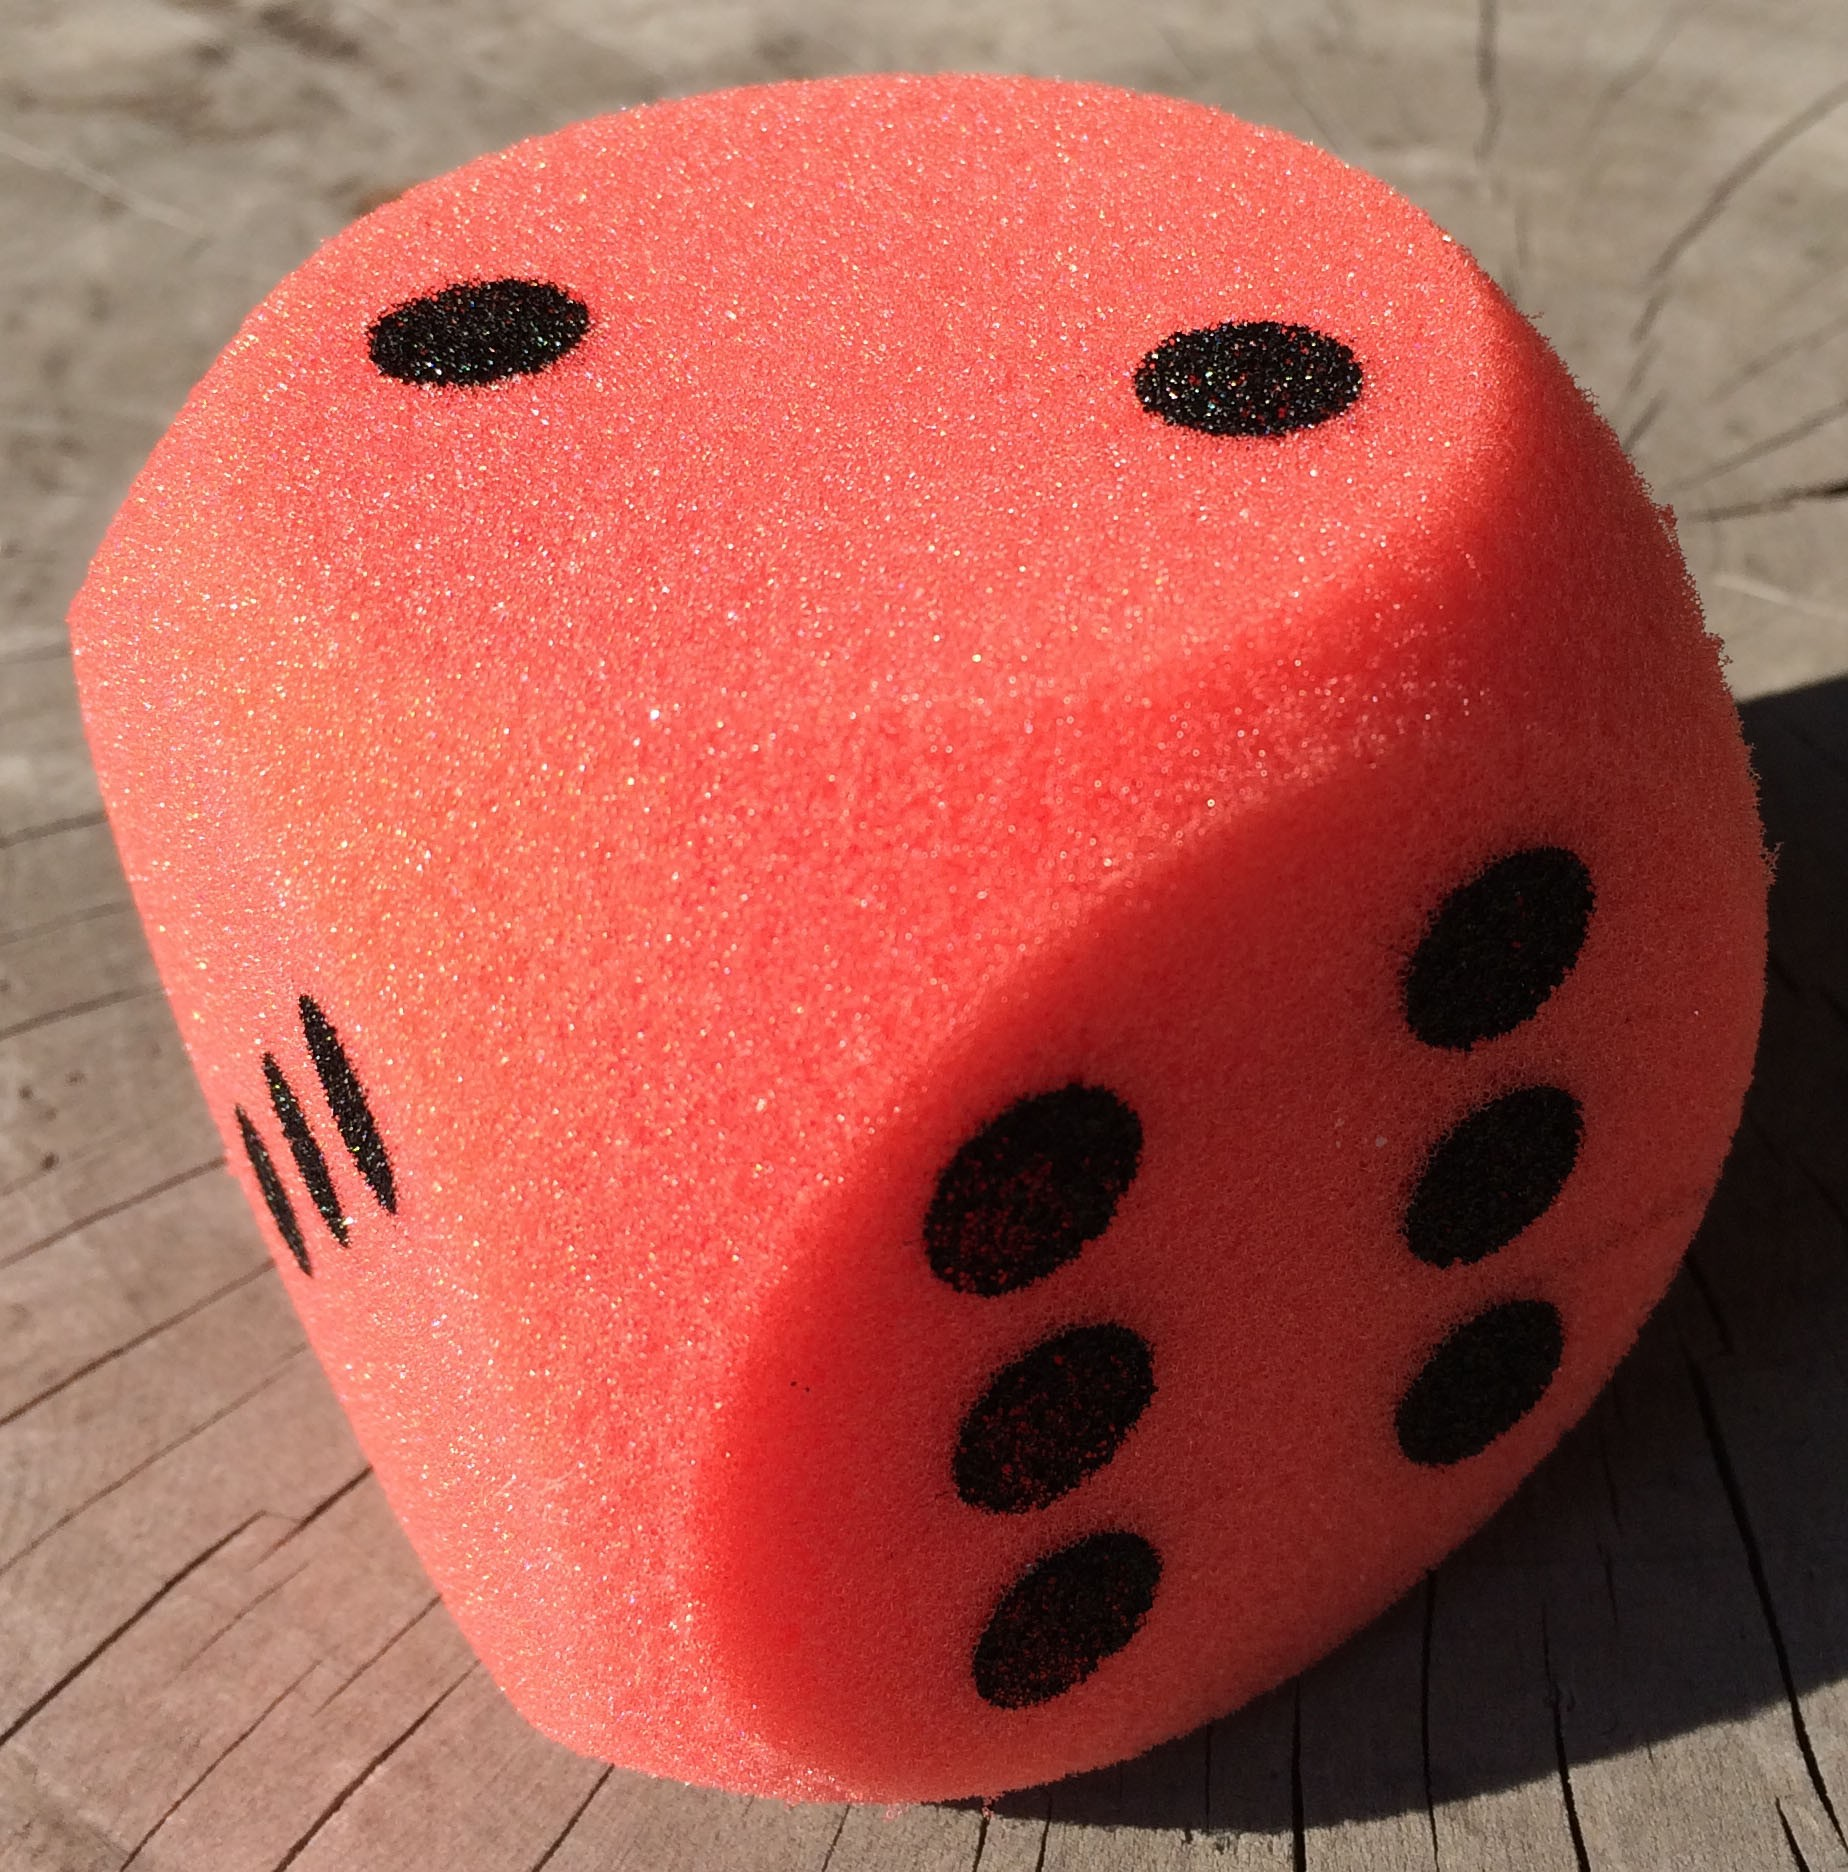 Giant Dice! One 7cm (70mm) Giant Foam Die, in Red